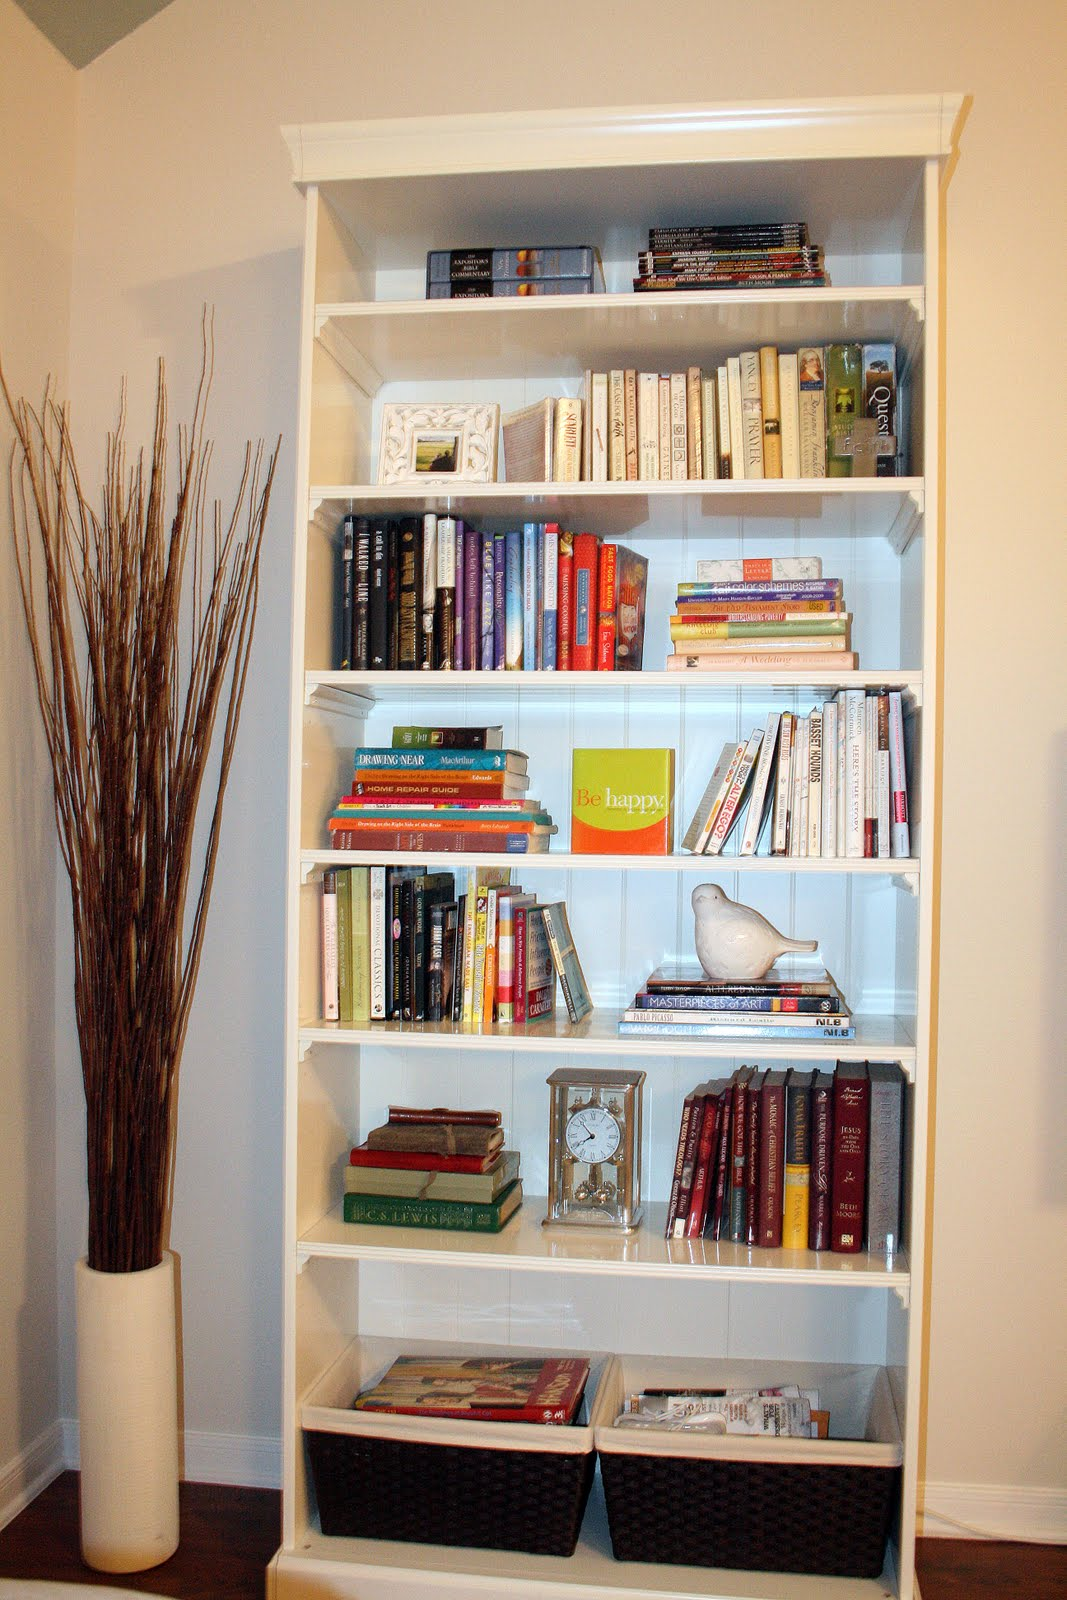 Keeping Up With The Joneses: On bookshelf accessorizing: